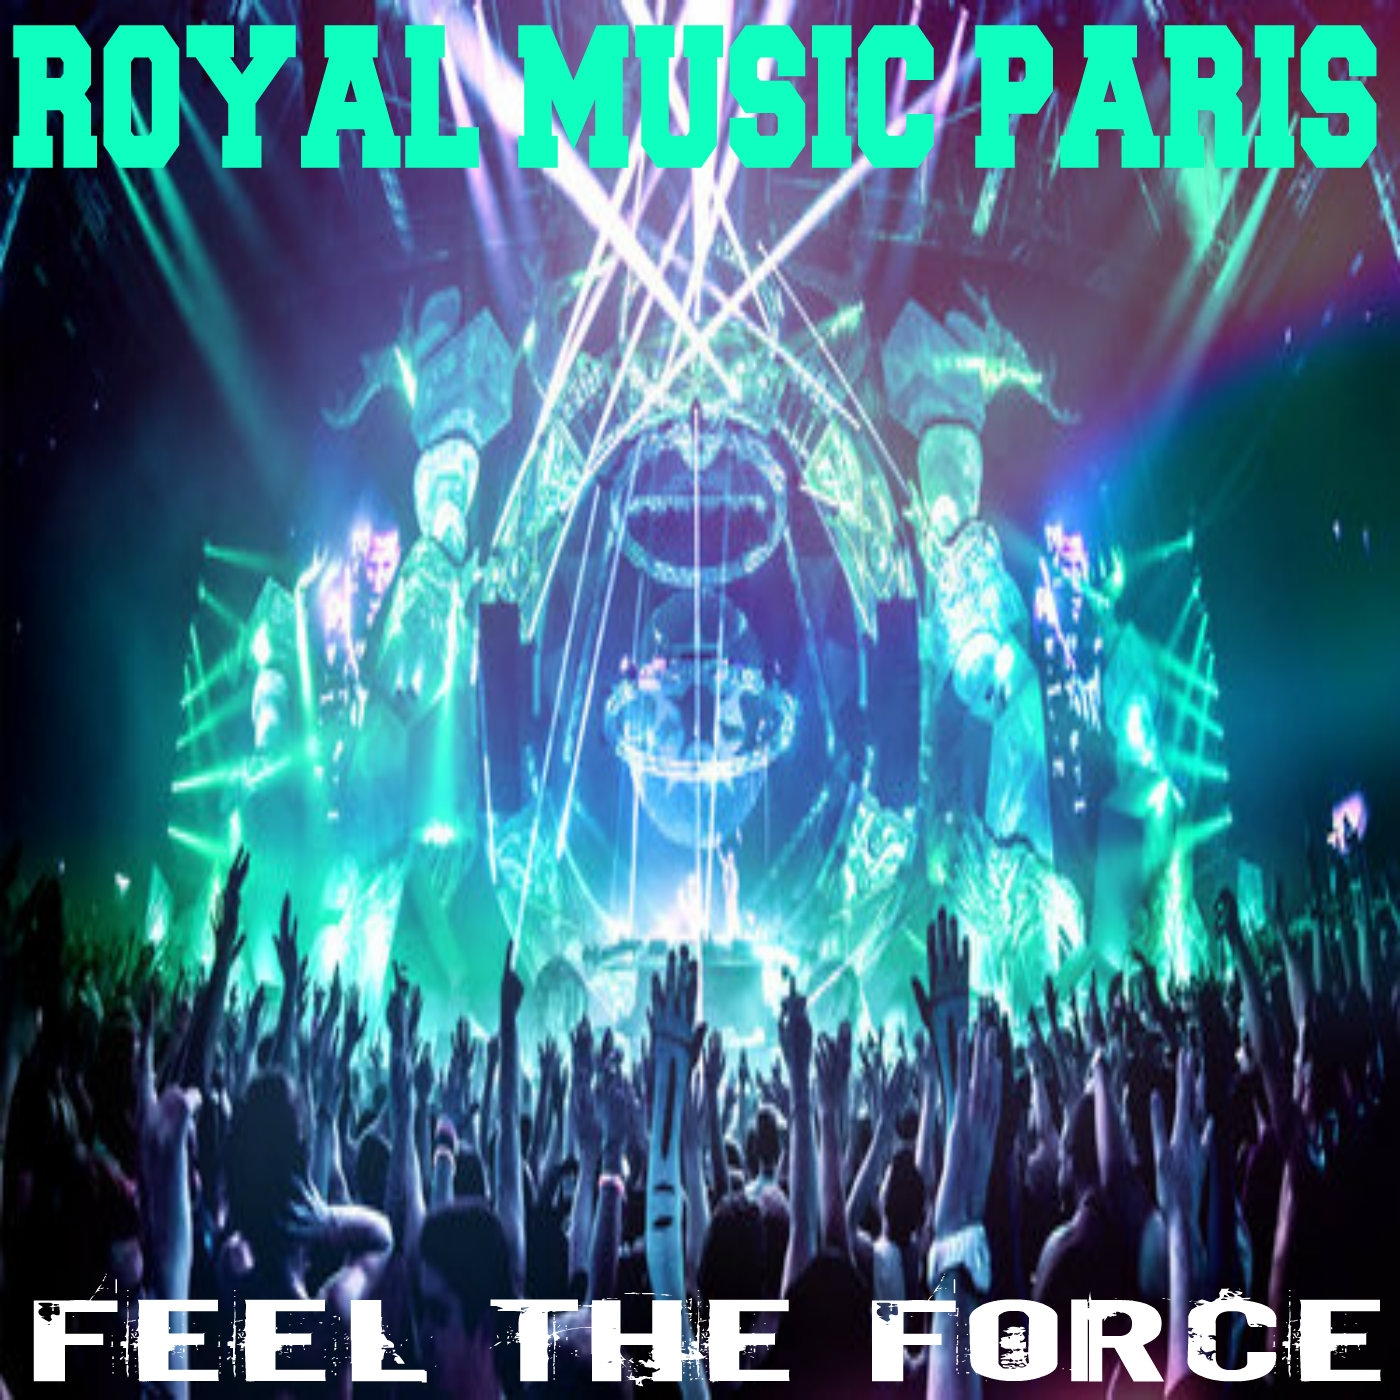 Royal Music Paris - Feel The Force (Original Mix)